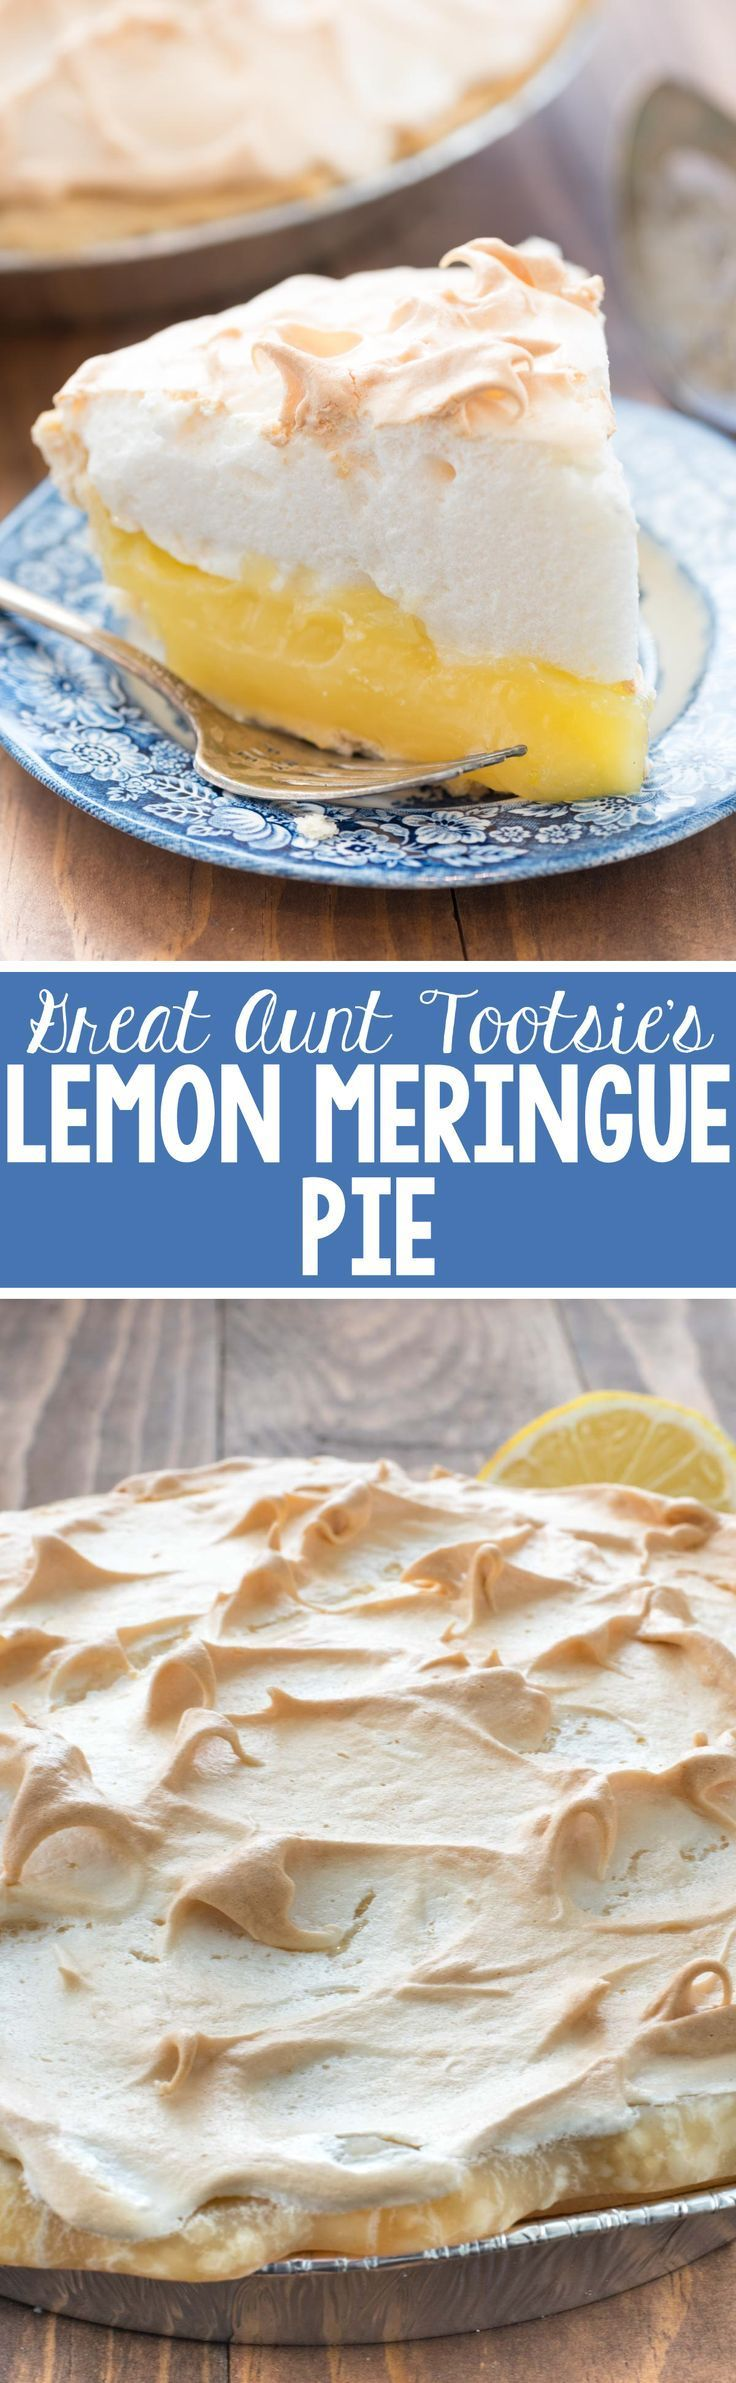 Aunt Tootsie's Lemon Meringue Pie - this recipe is from my great aunt and it...   - Cakes -